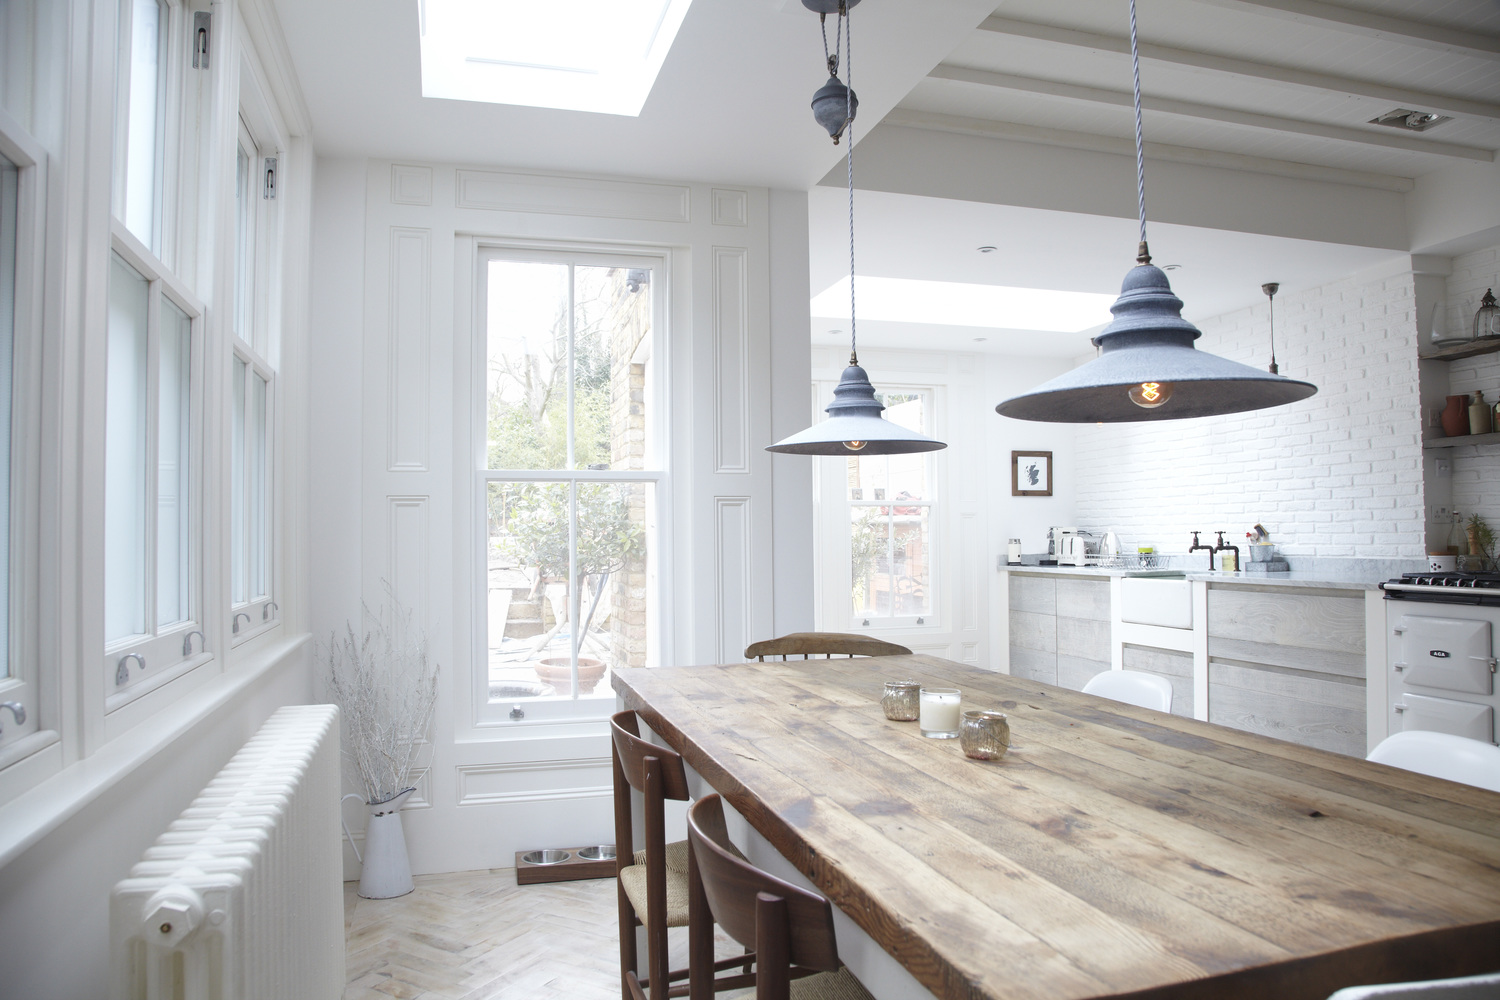 15 most popular interior design styles explained find yours!